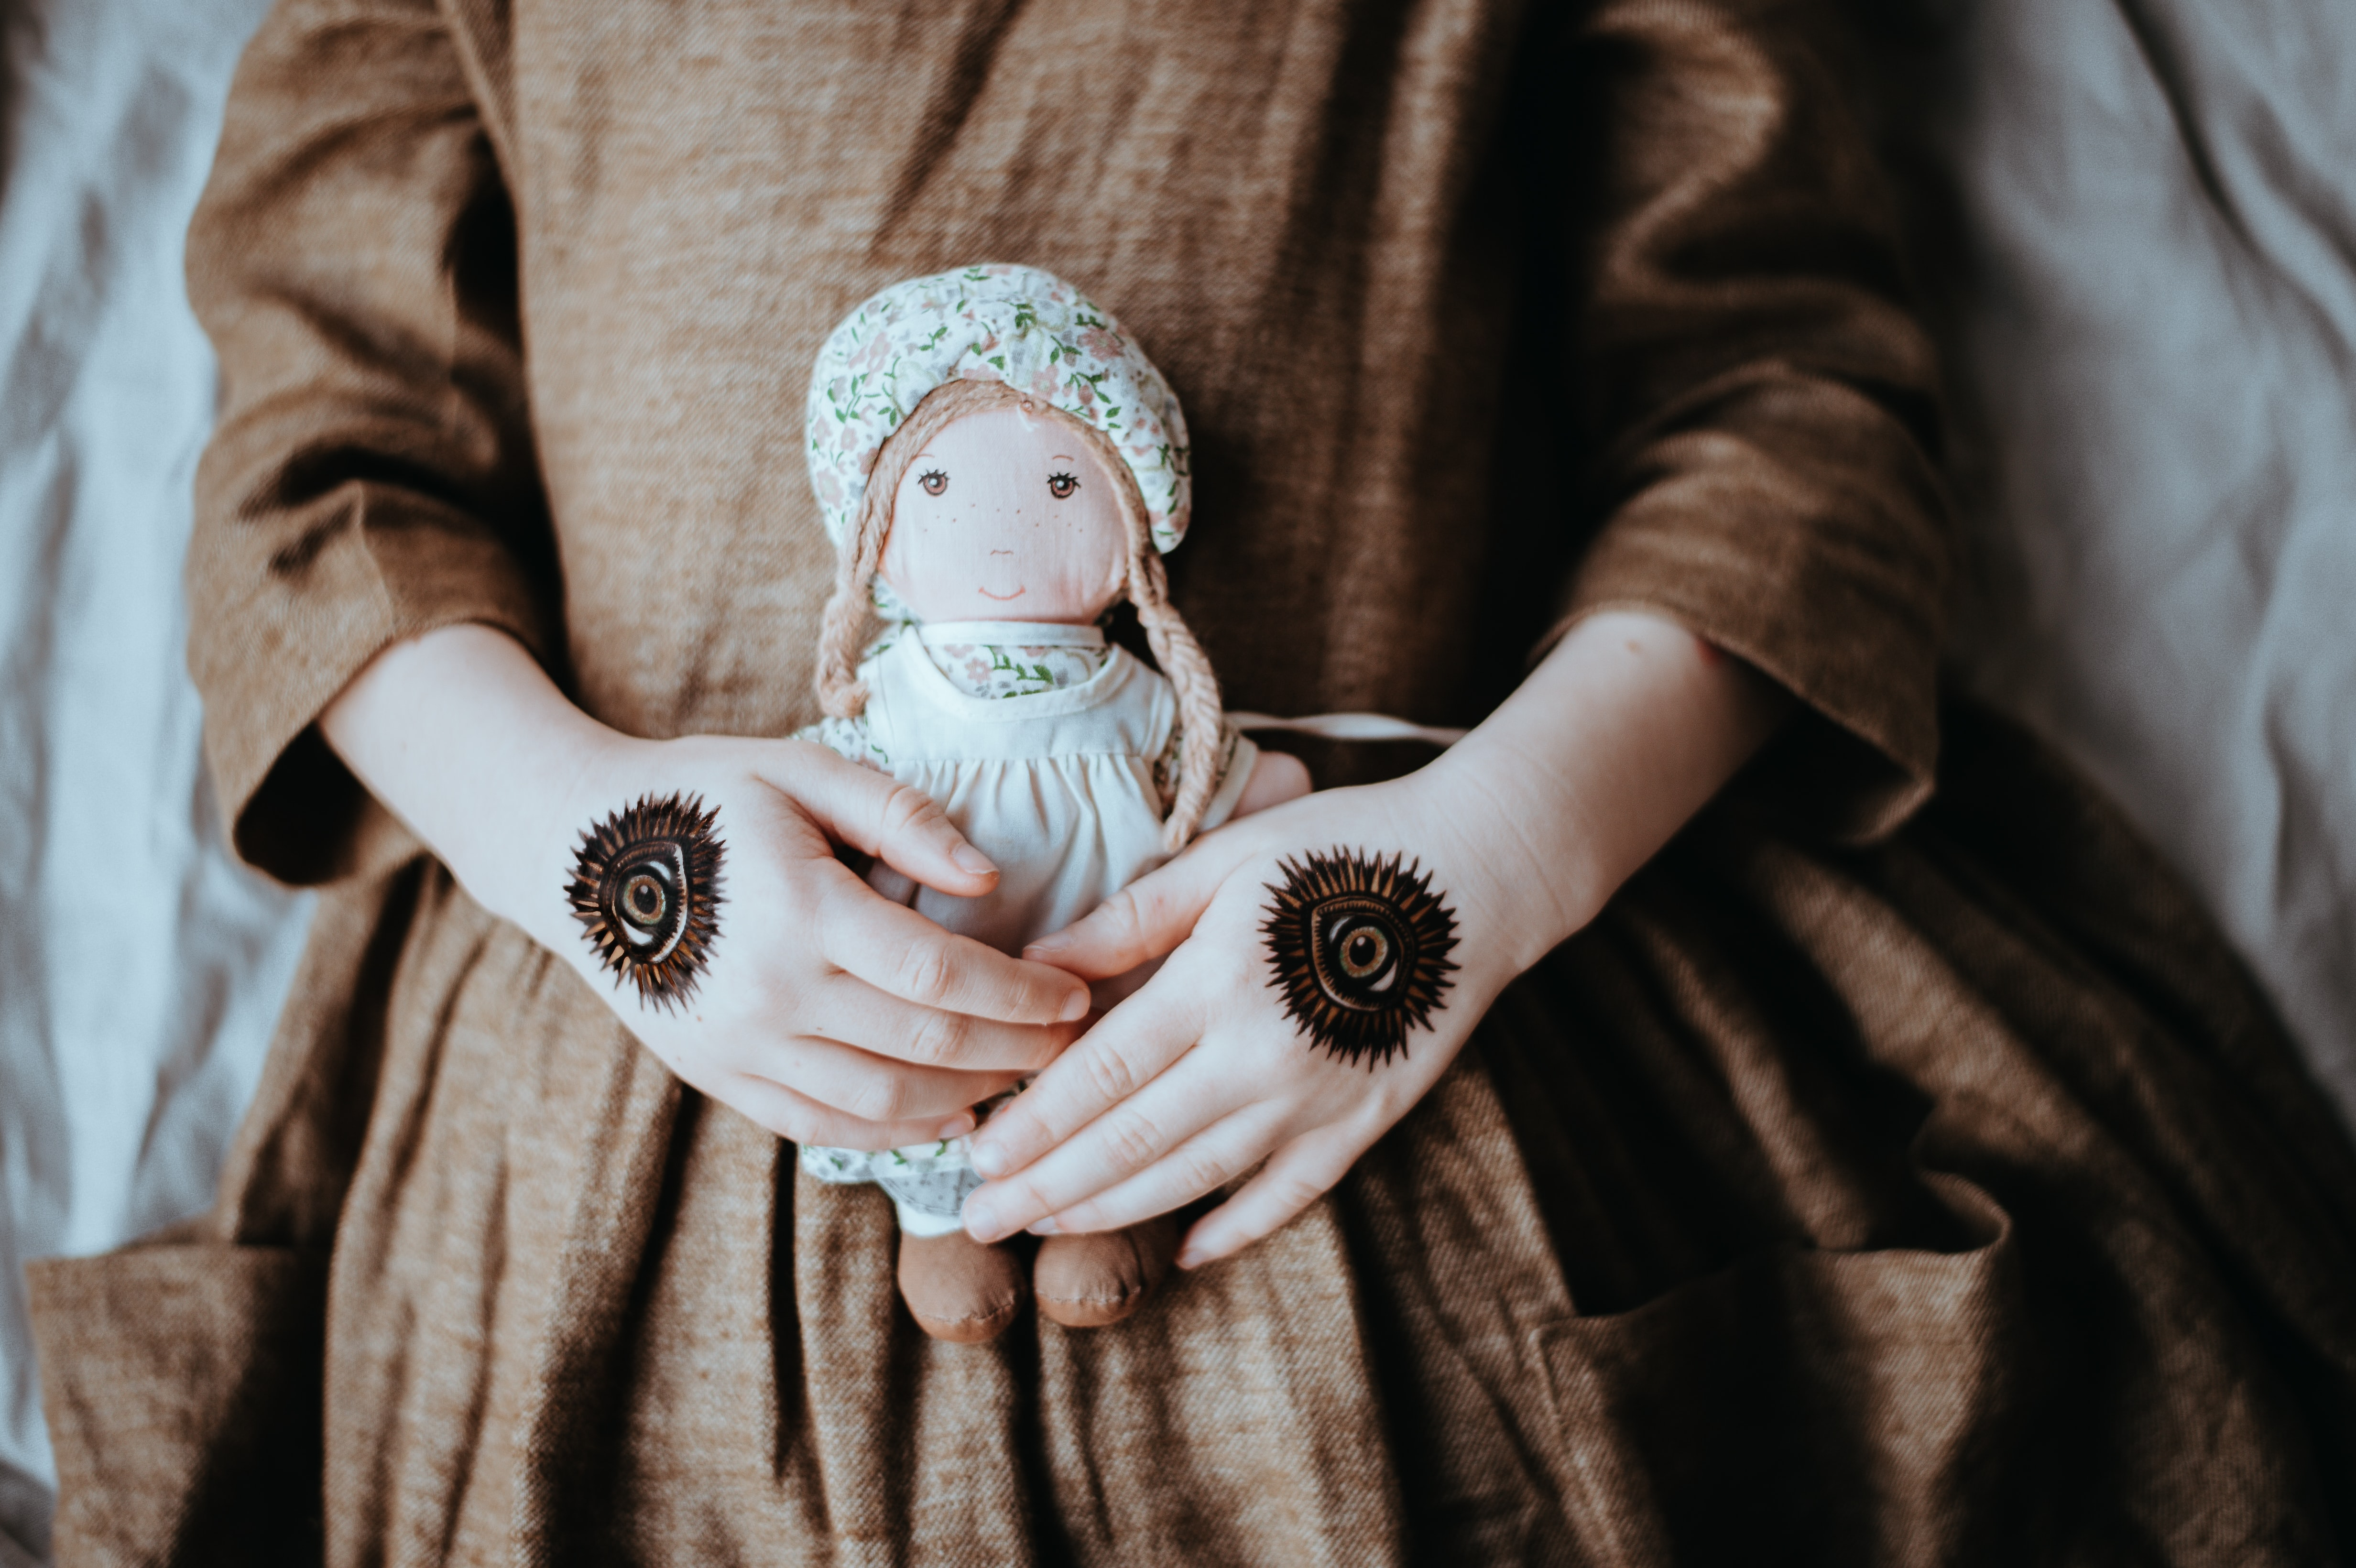 woman holding doll